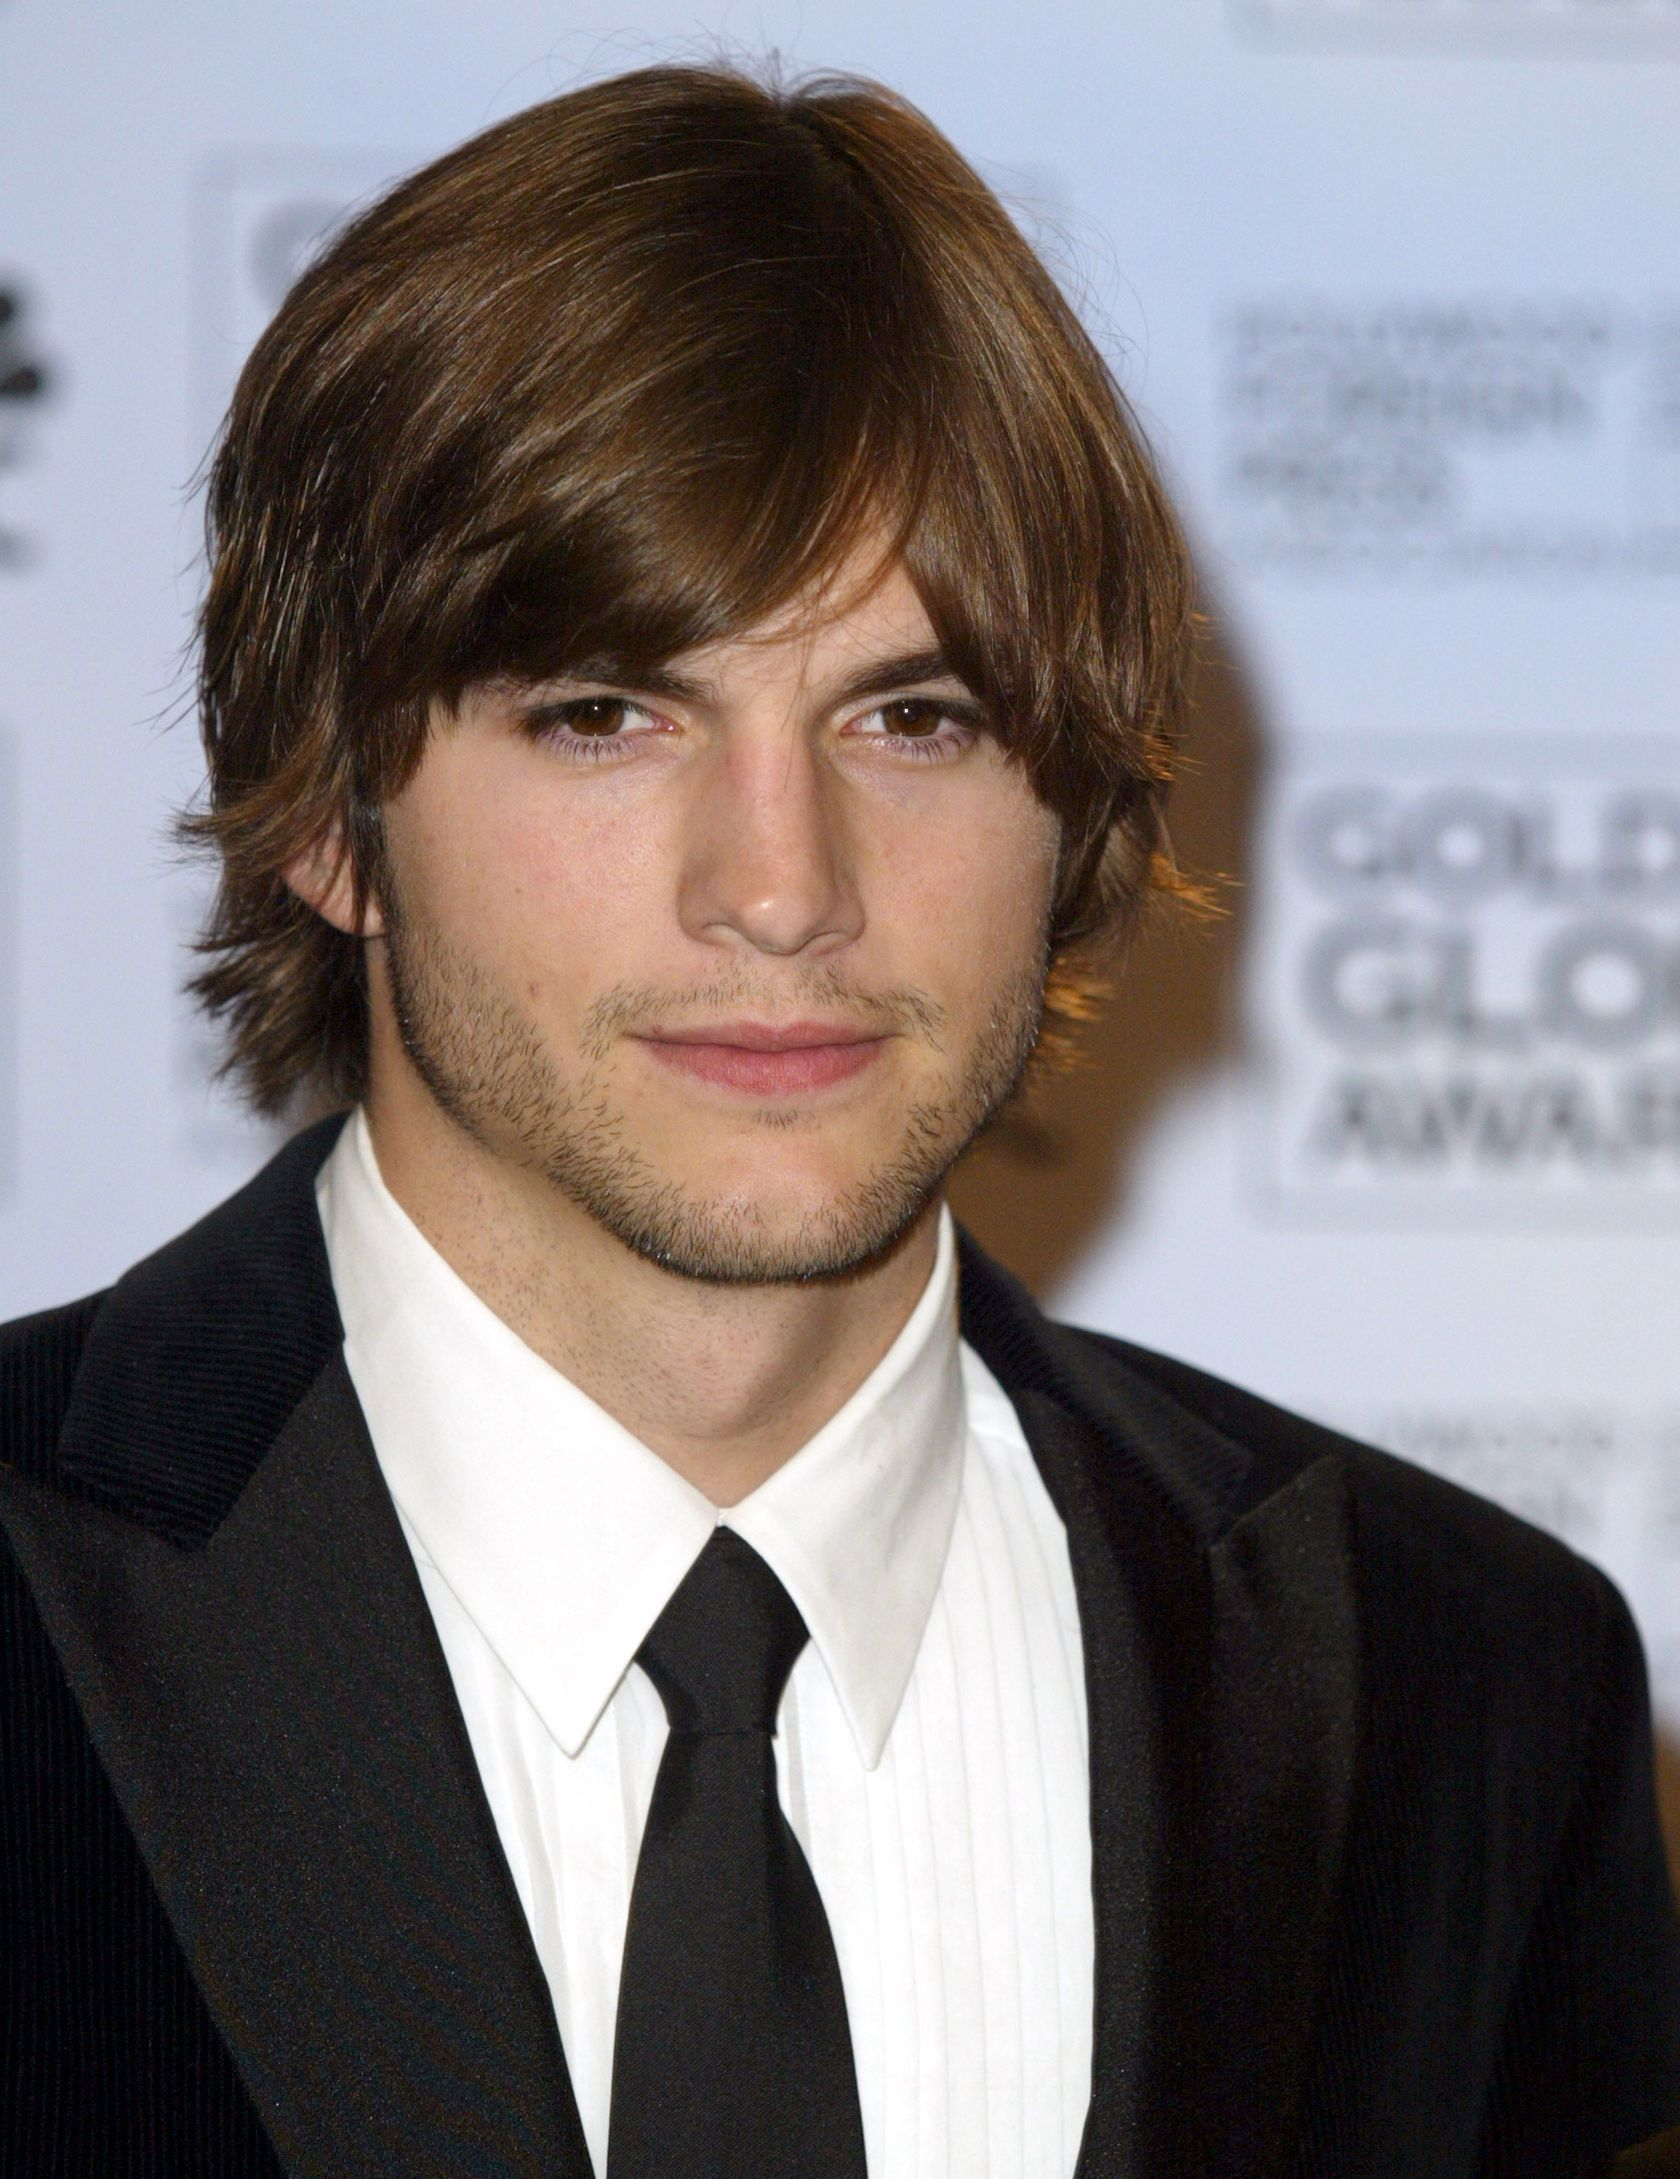 ashton kutcher dating history Ashton kutcher's dating timeline includes history of infidelity while being married to demi moore read about his relationship history, past.